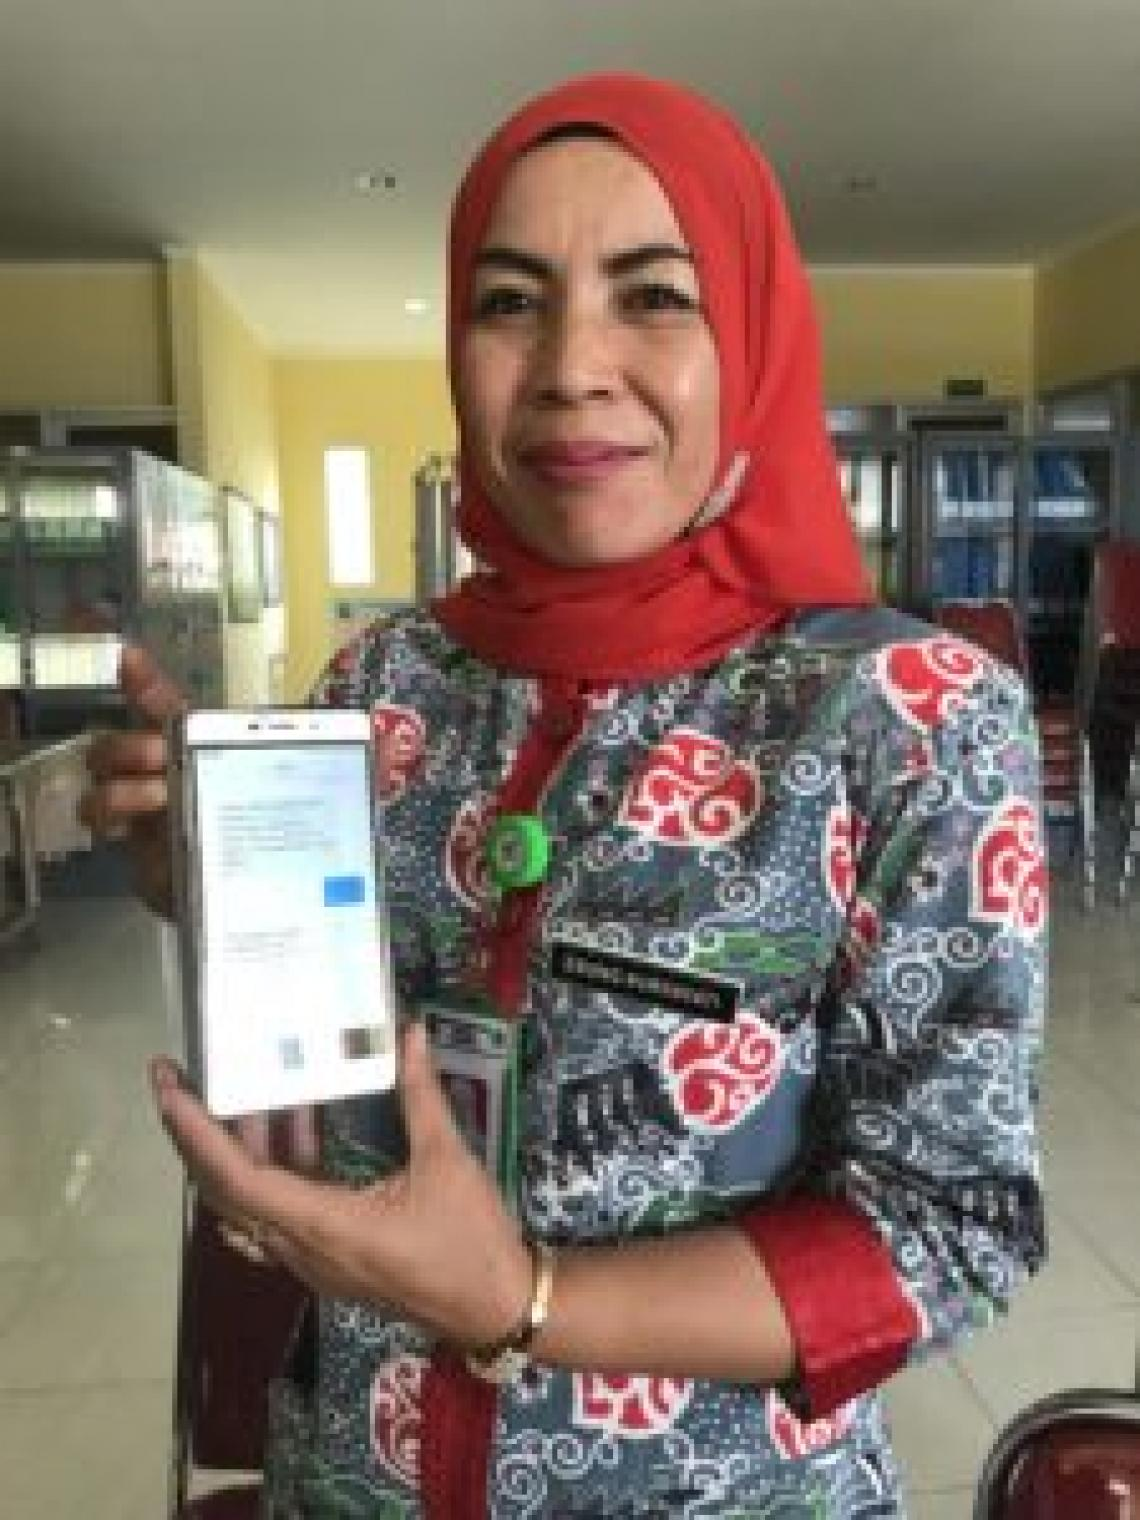 Ms. Enung Nurhayati holding a mobile phone